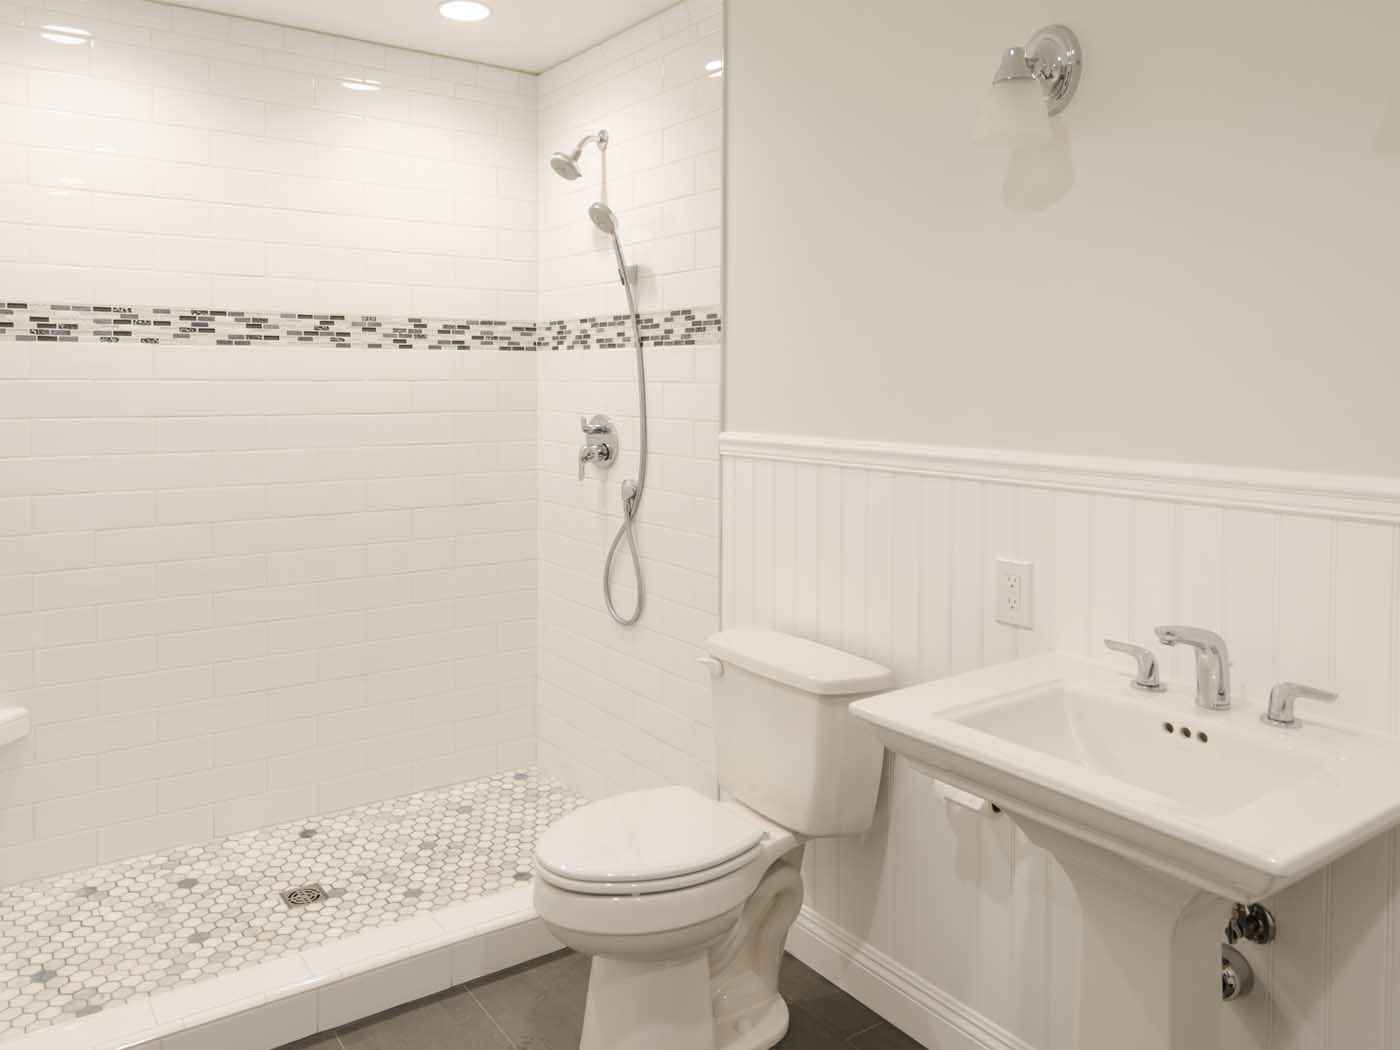 Feuillet residence point loma san diego california for White ceramic tile bathroom ideas